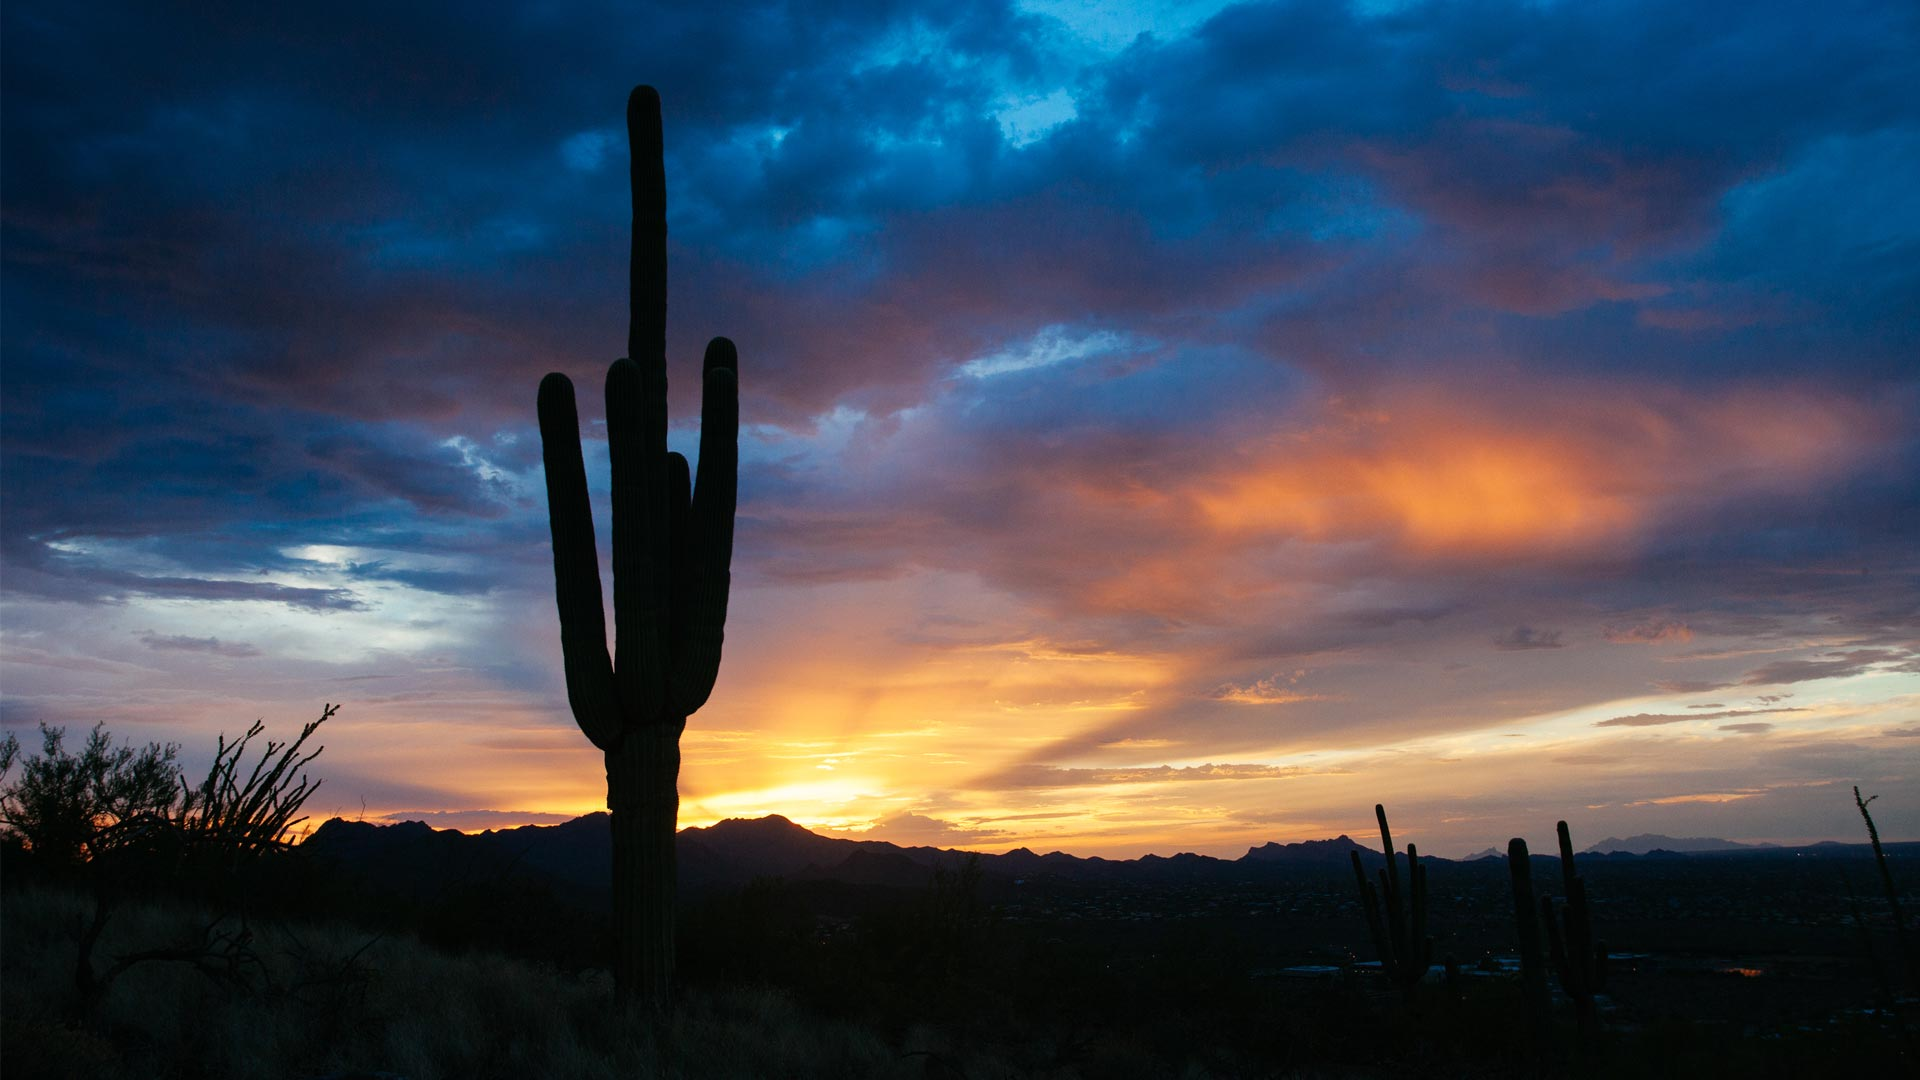 A lone saguaro silhouetted against the sunset on Tumamoc Hill.